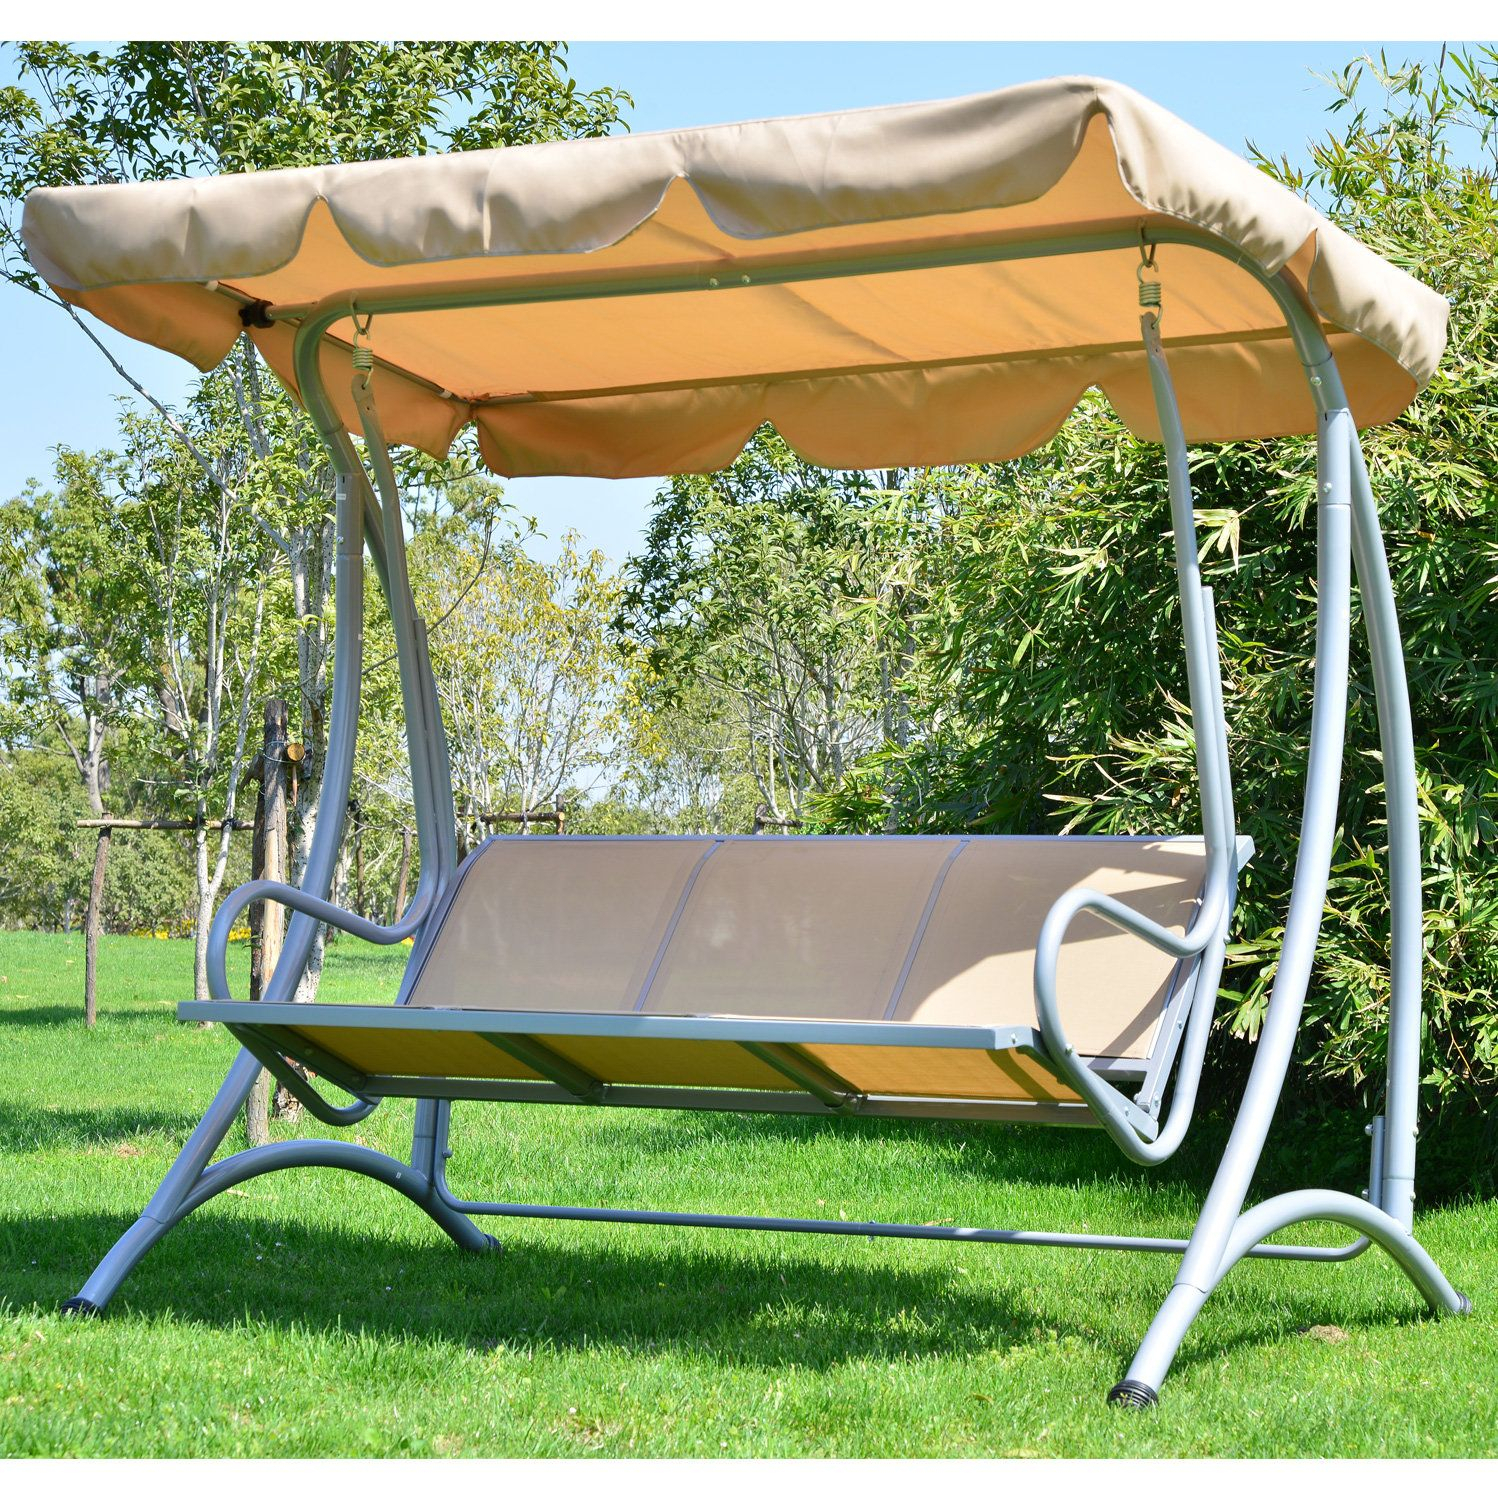 Mossley Canopy Porch Swing With Stand | Outdoor Patio Swing Regarding Outdoor Canopy Hammock Porch Swings With Stand (View 3 of 25)